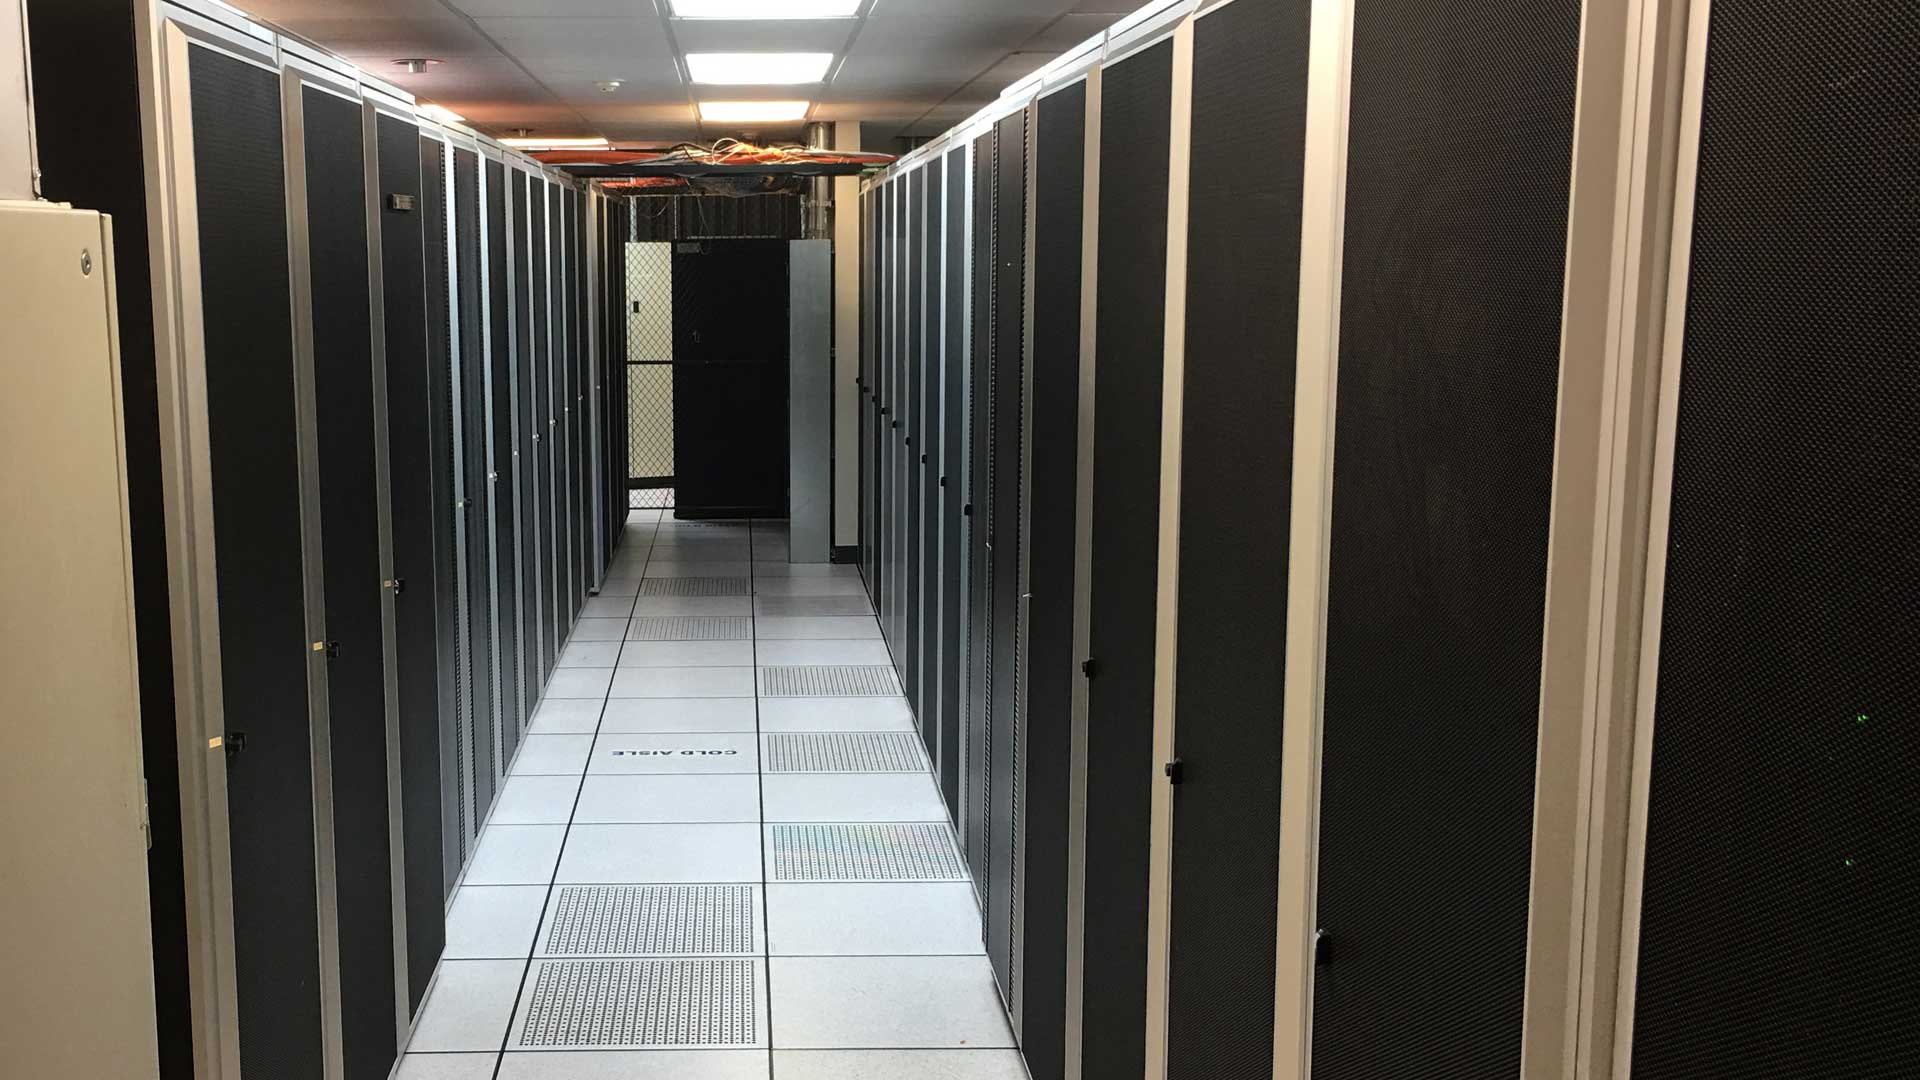 Picture of our data center all our servers and cabinets located in Orlando, %%State%%.